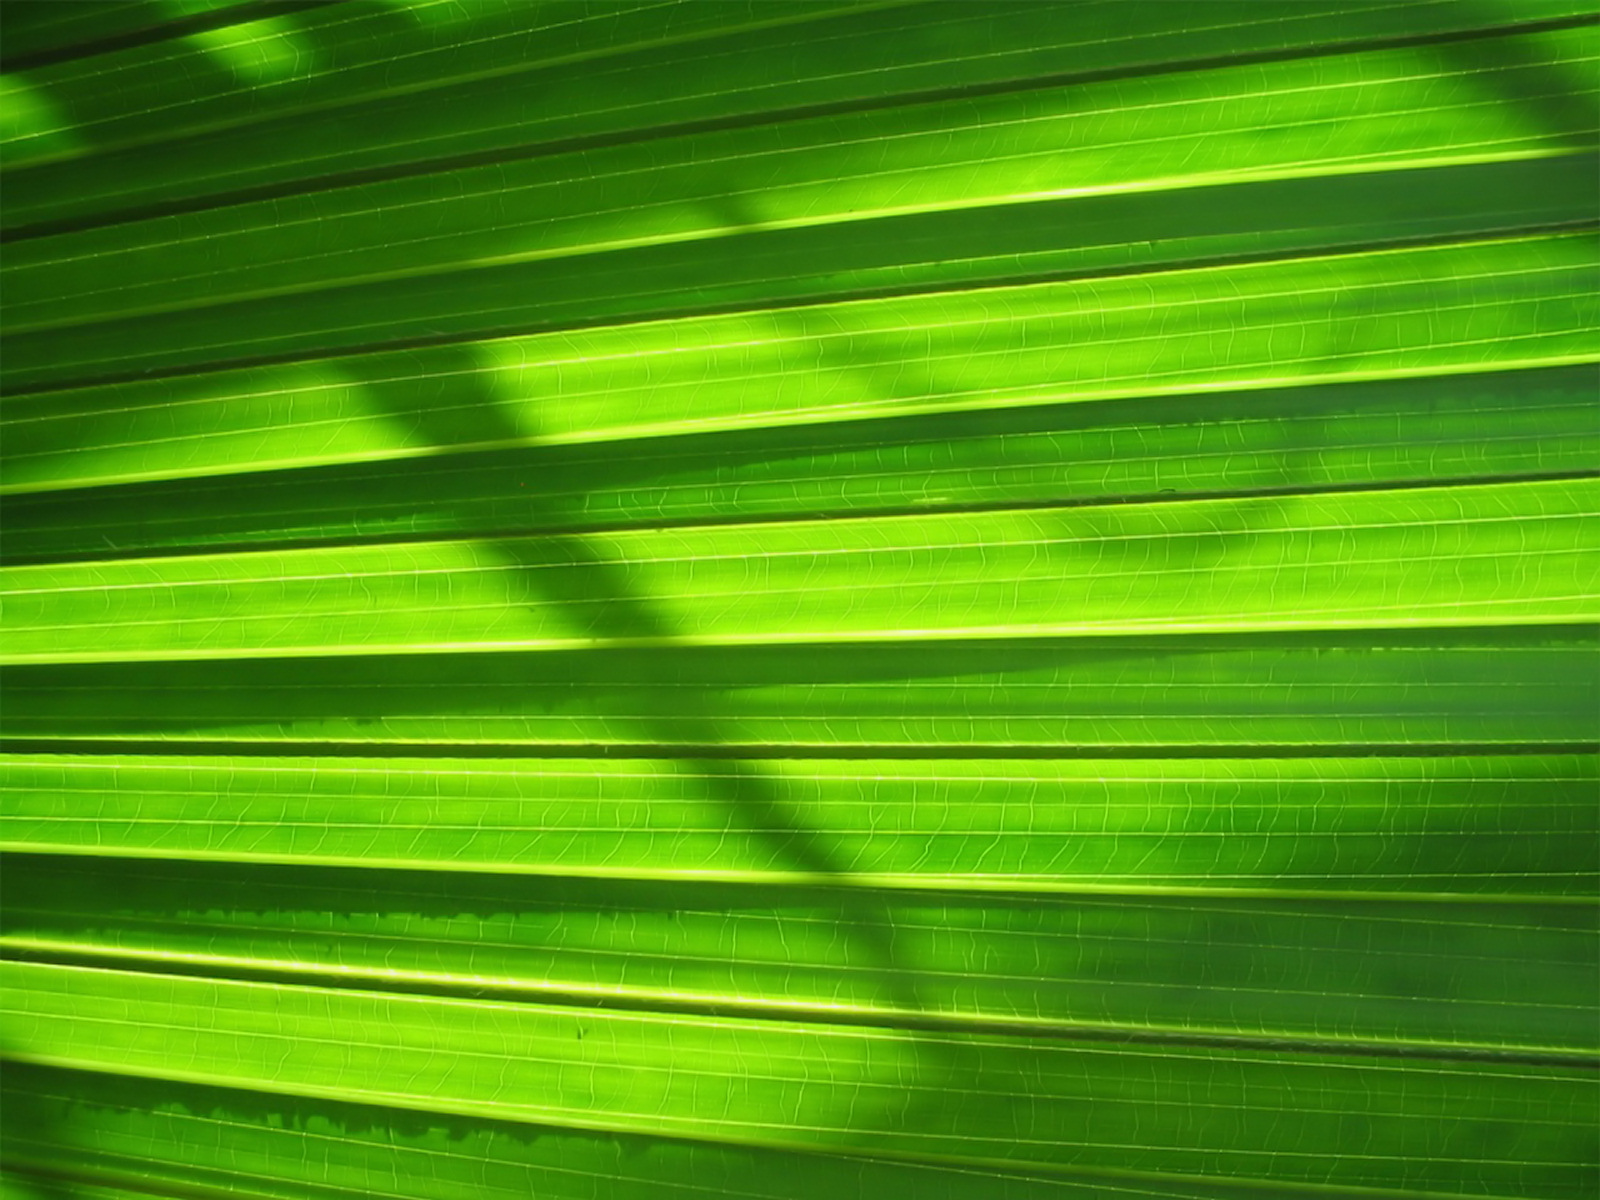 Green series of high-definition 16936